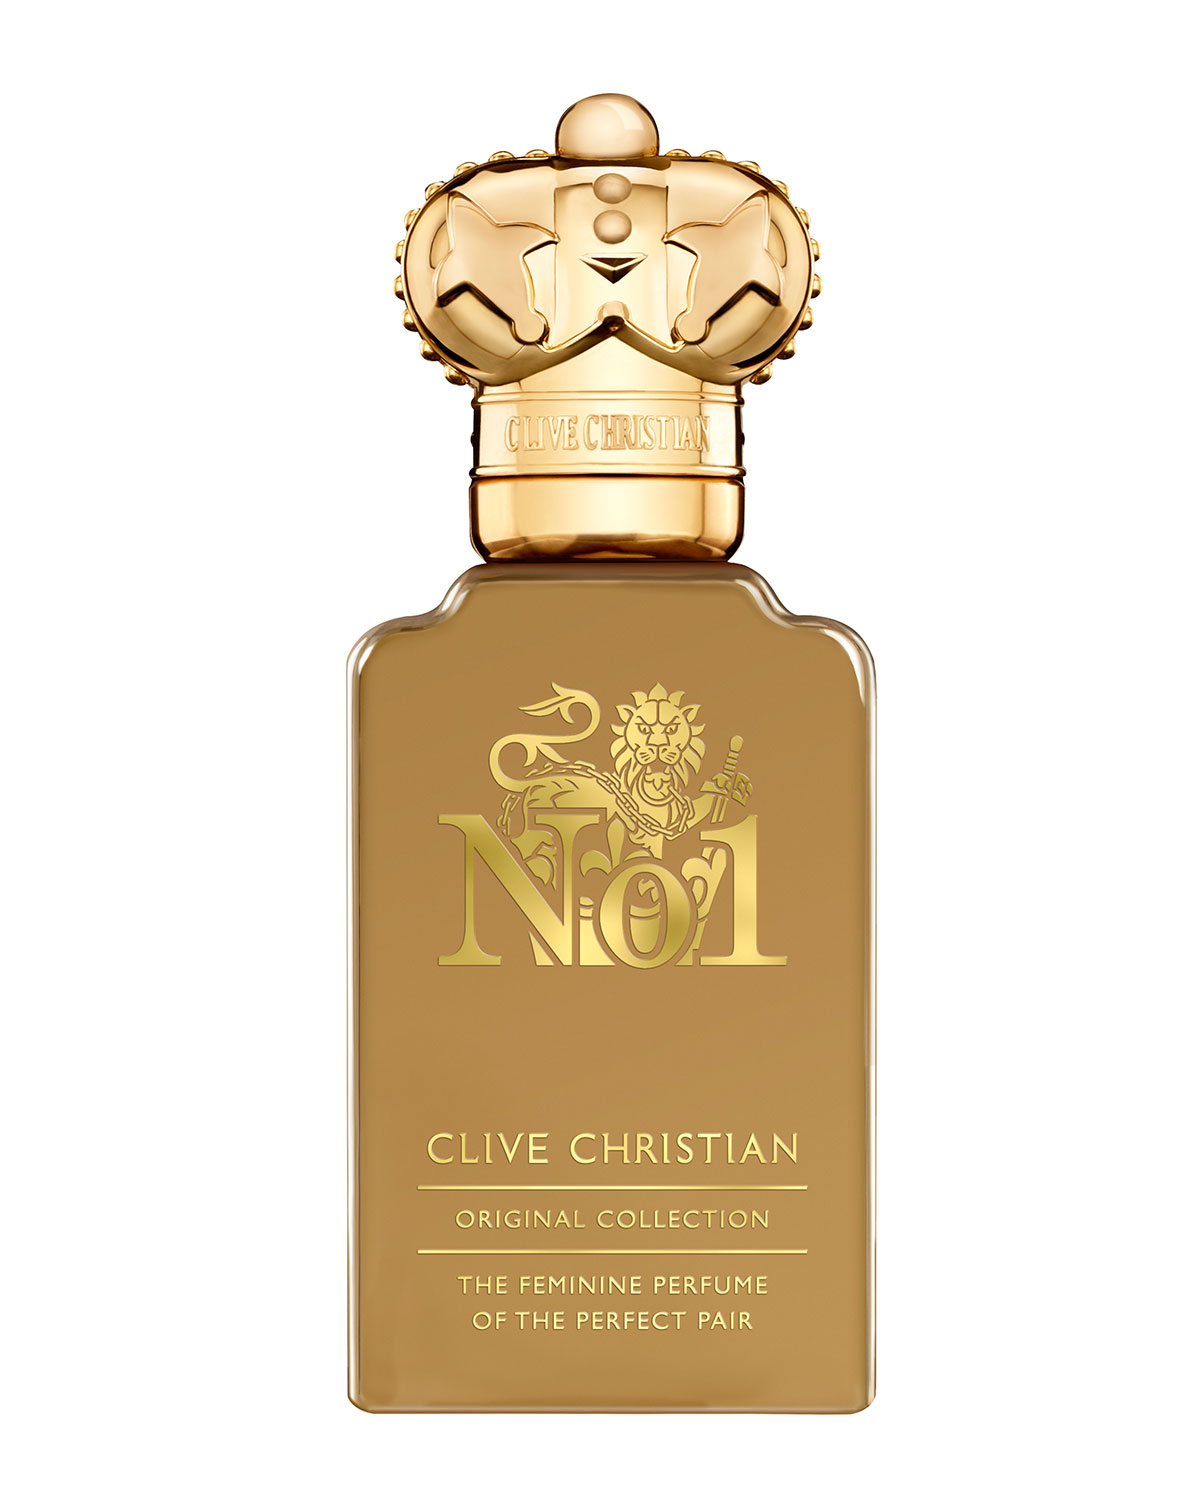 Clive Christian 1.0 oz. Original Collection No. 1 Feminine